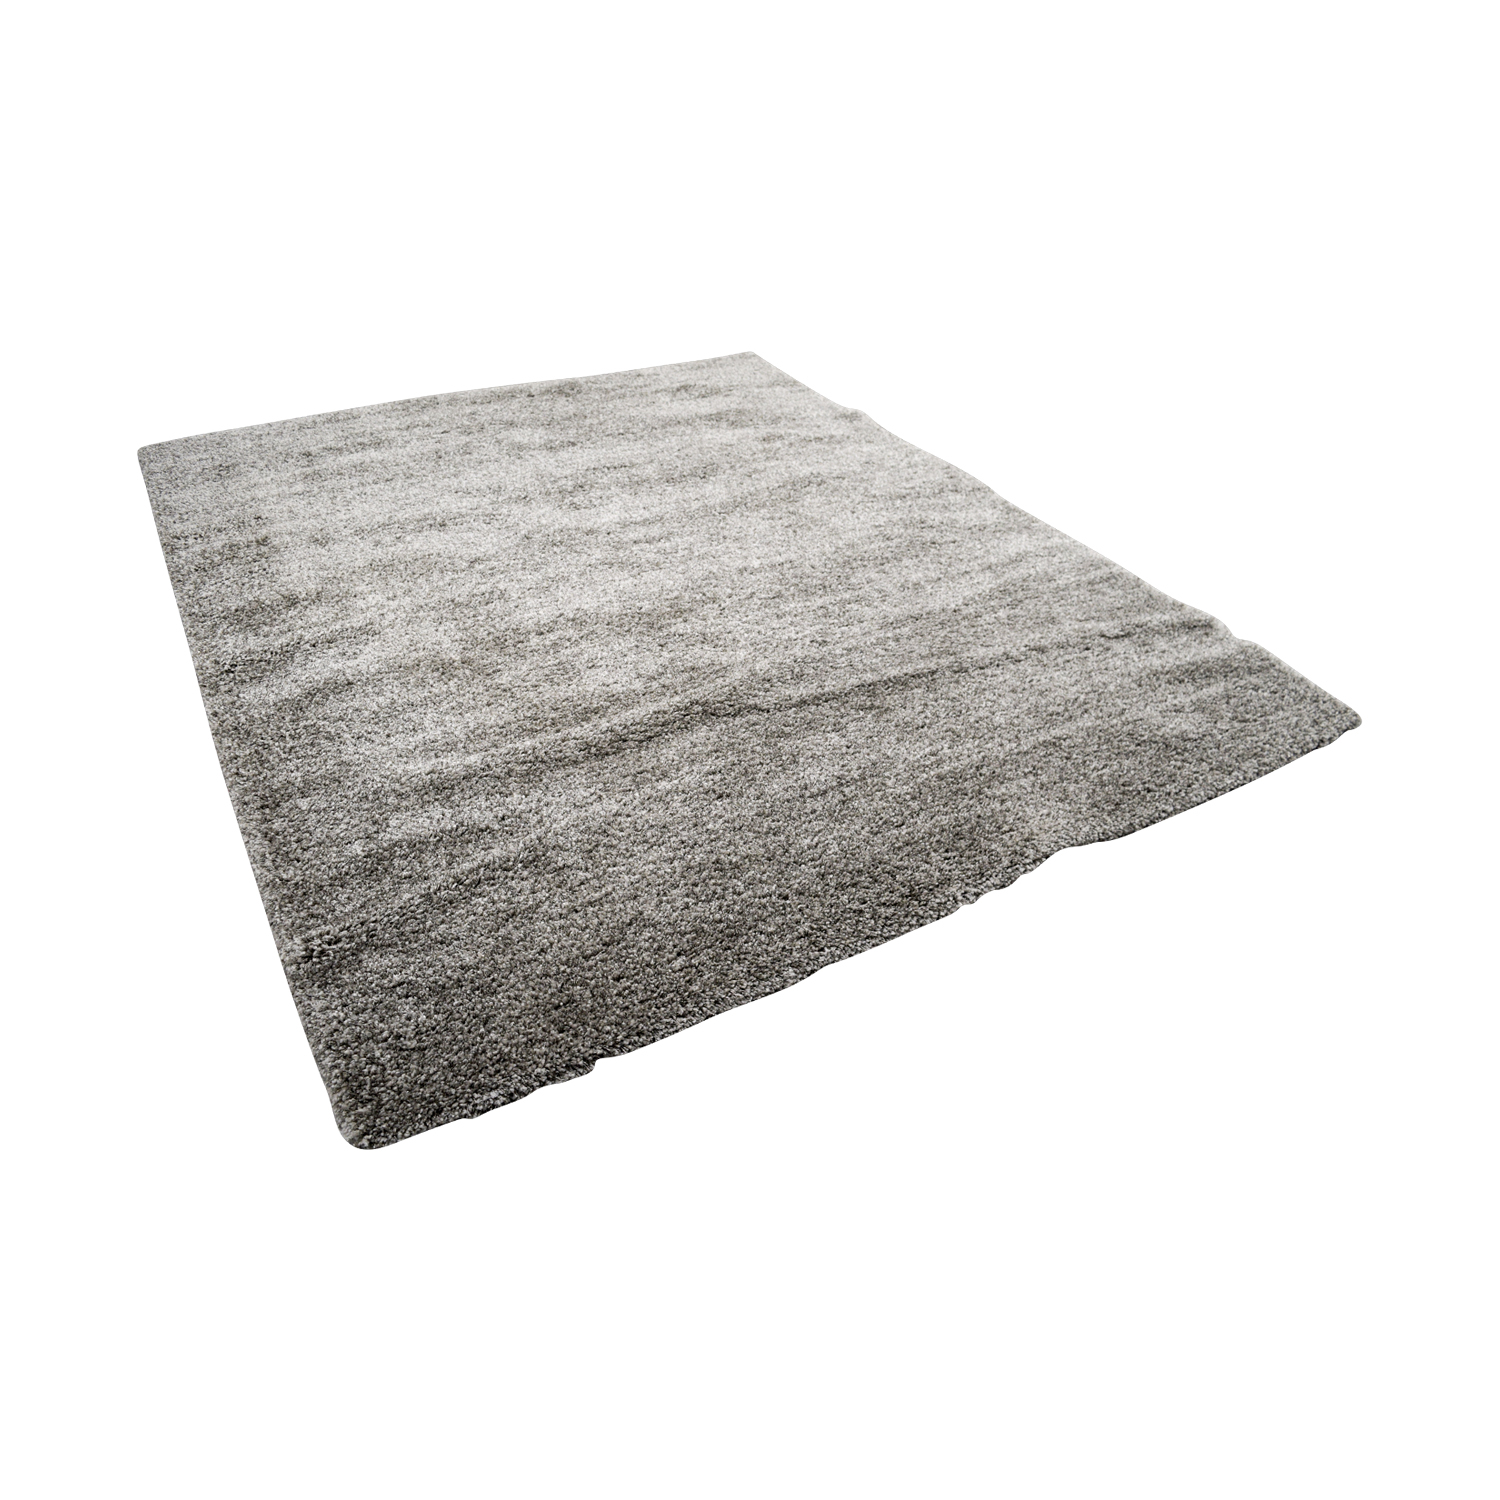 Safavieh Safavieh Braided Light Gray Rectangle Shag Rug on sale